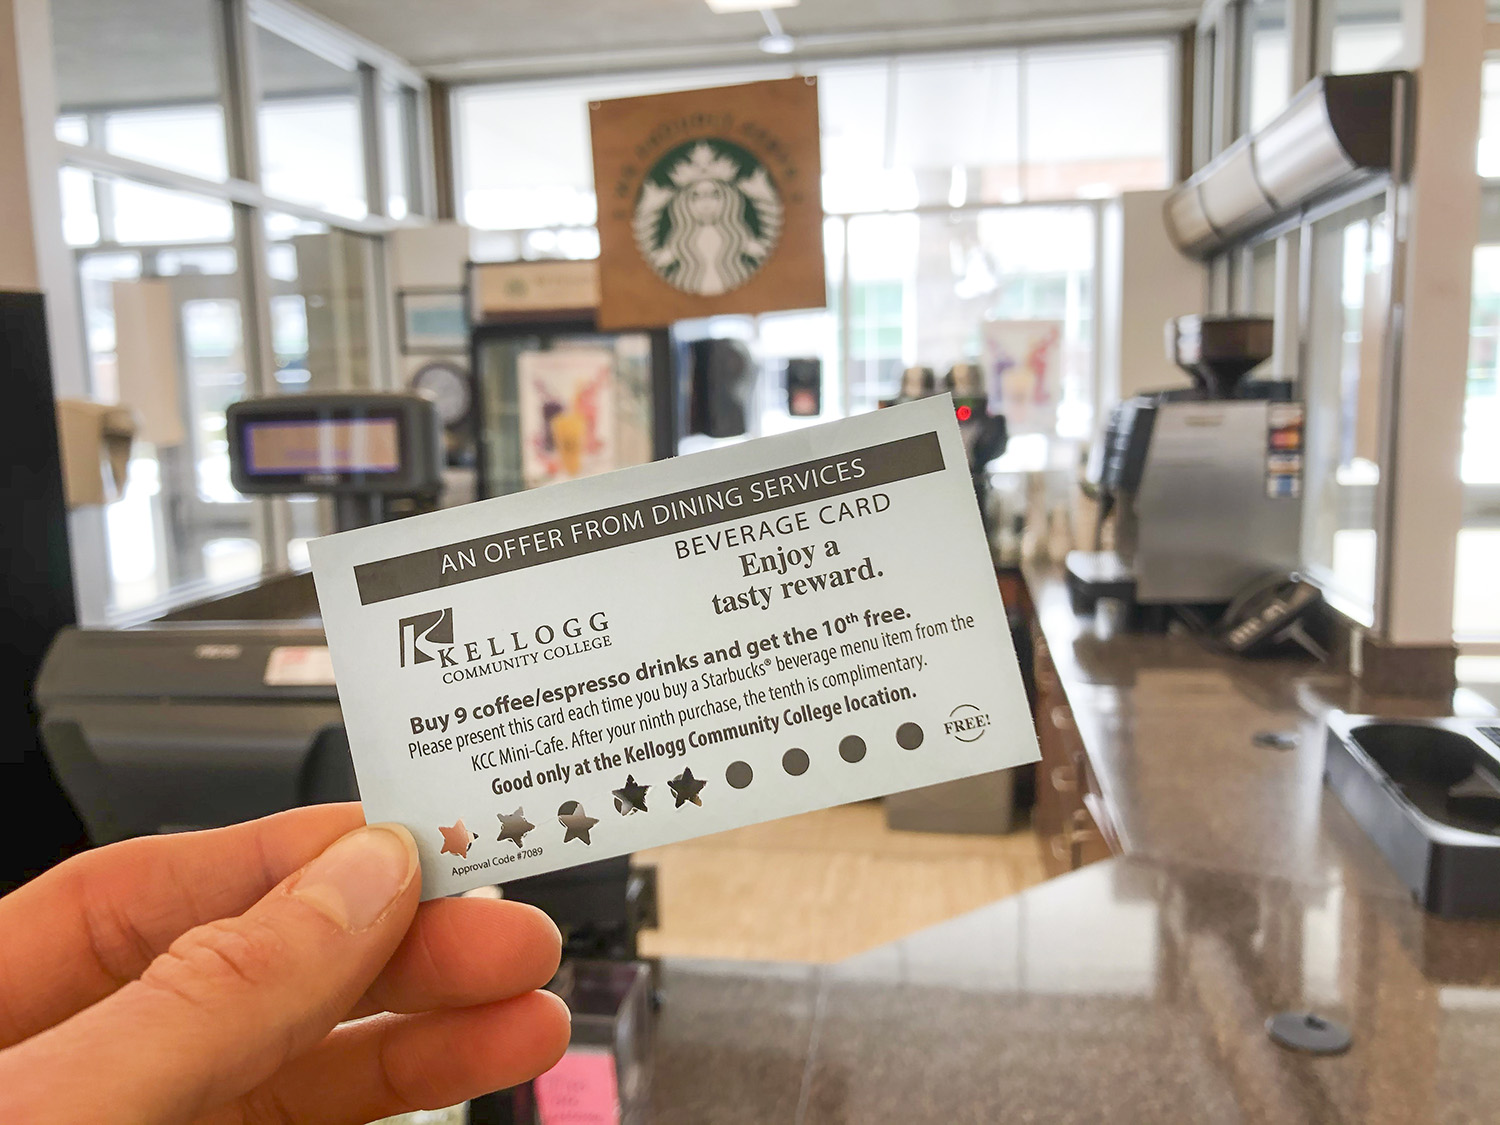 A hand holds a free-coffee card in the foreground with KCC's Mini Cafe in the background.